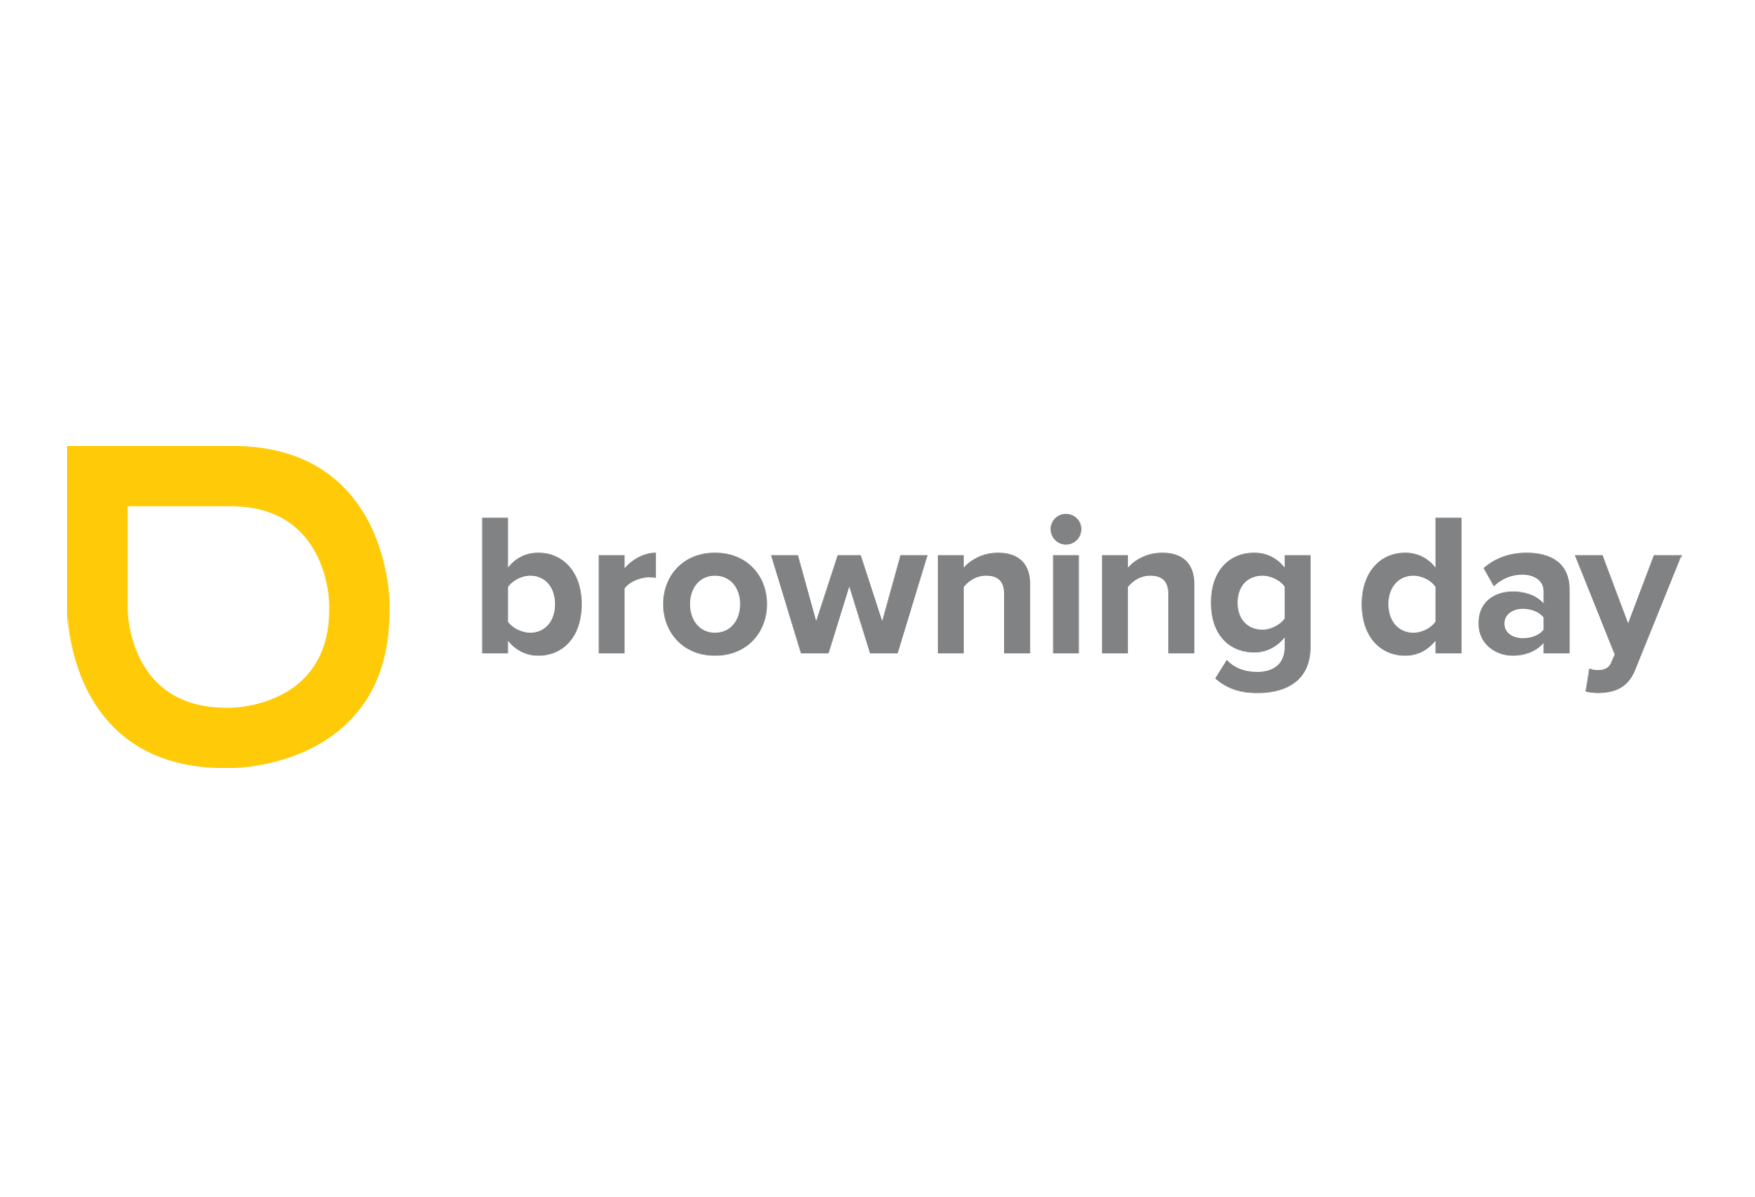 Browning Day